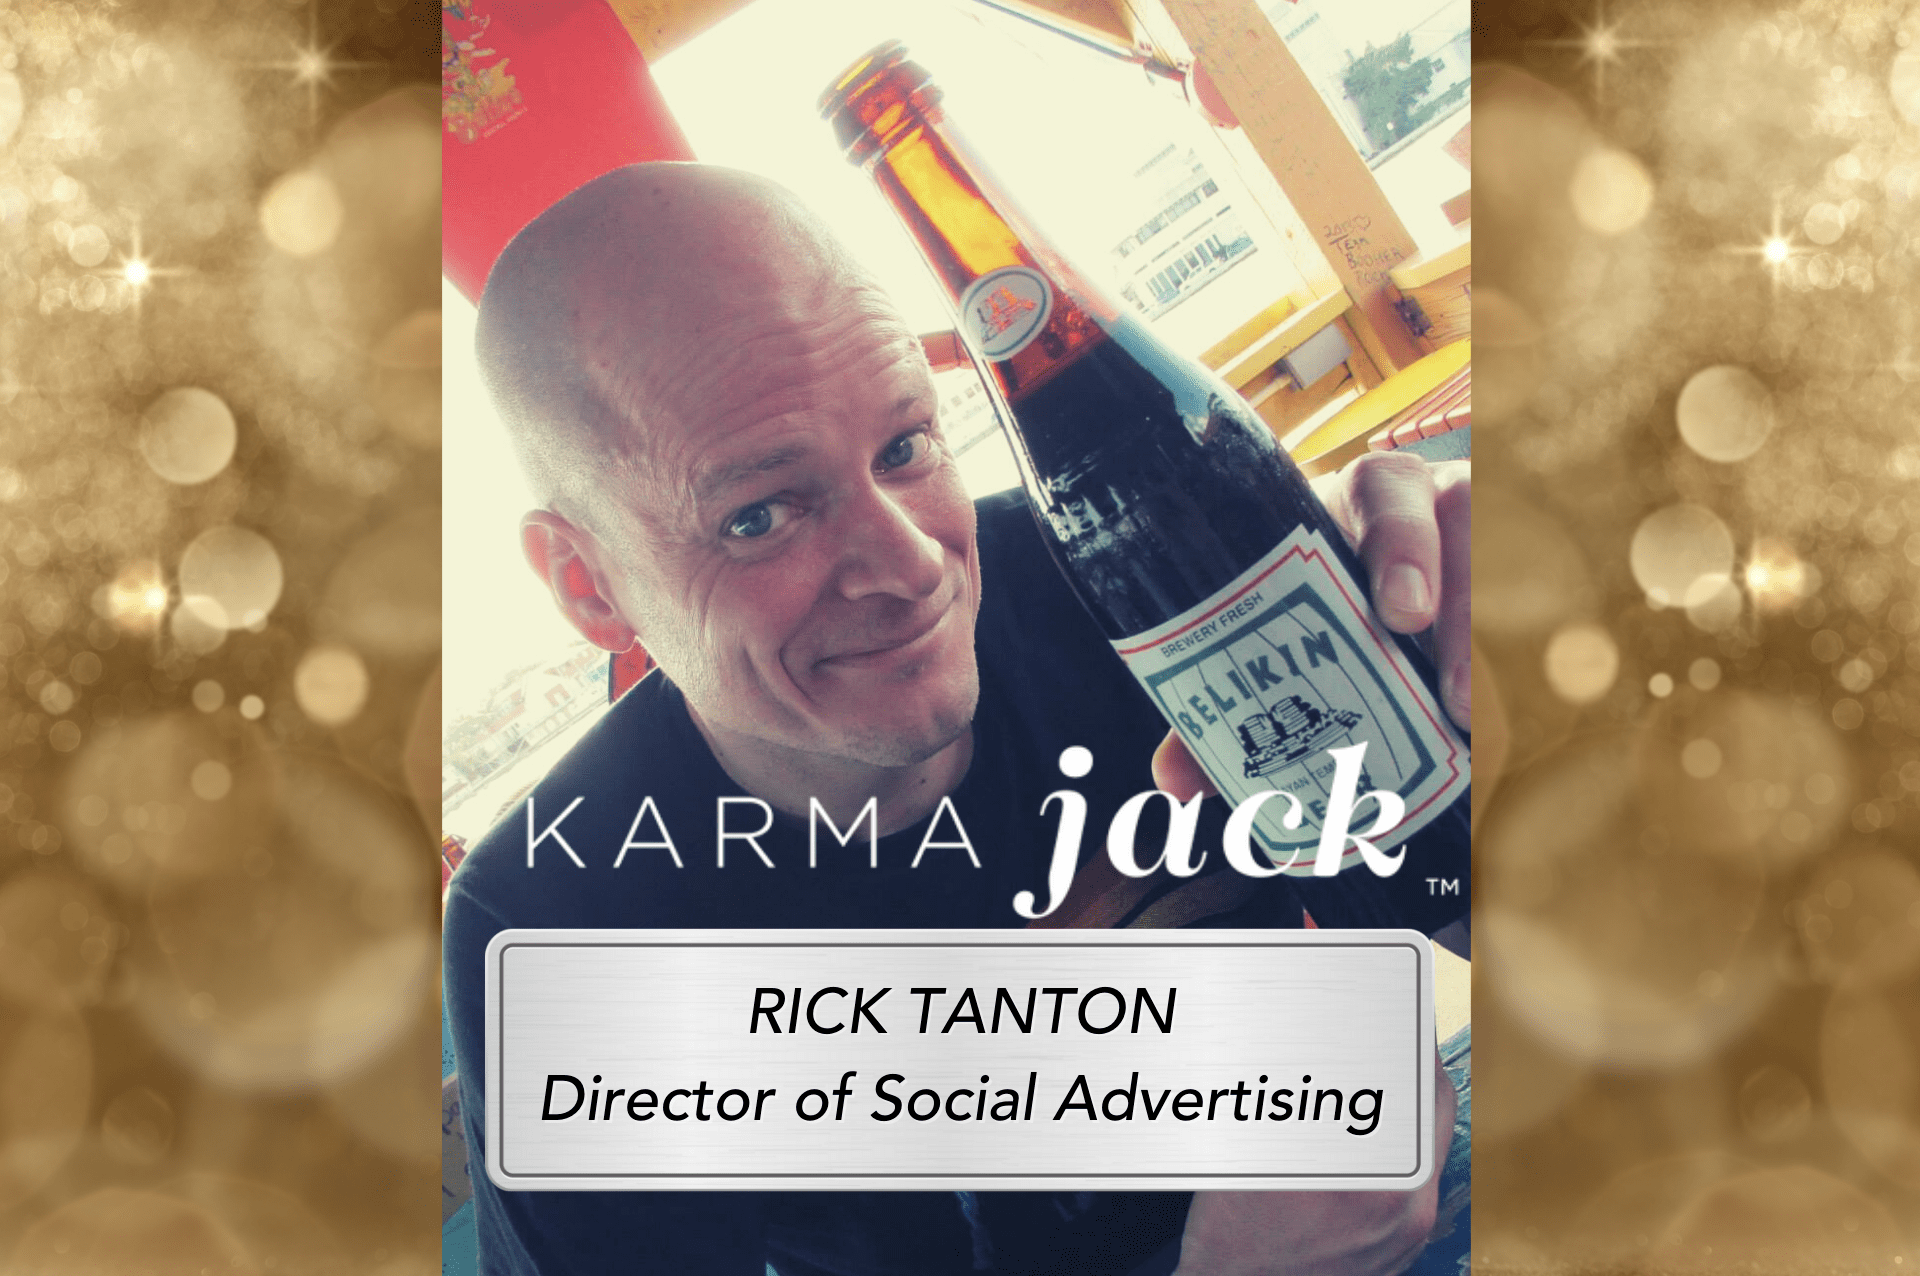 Director of Social Advertising